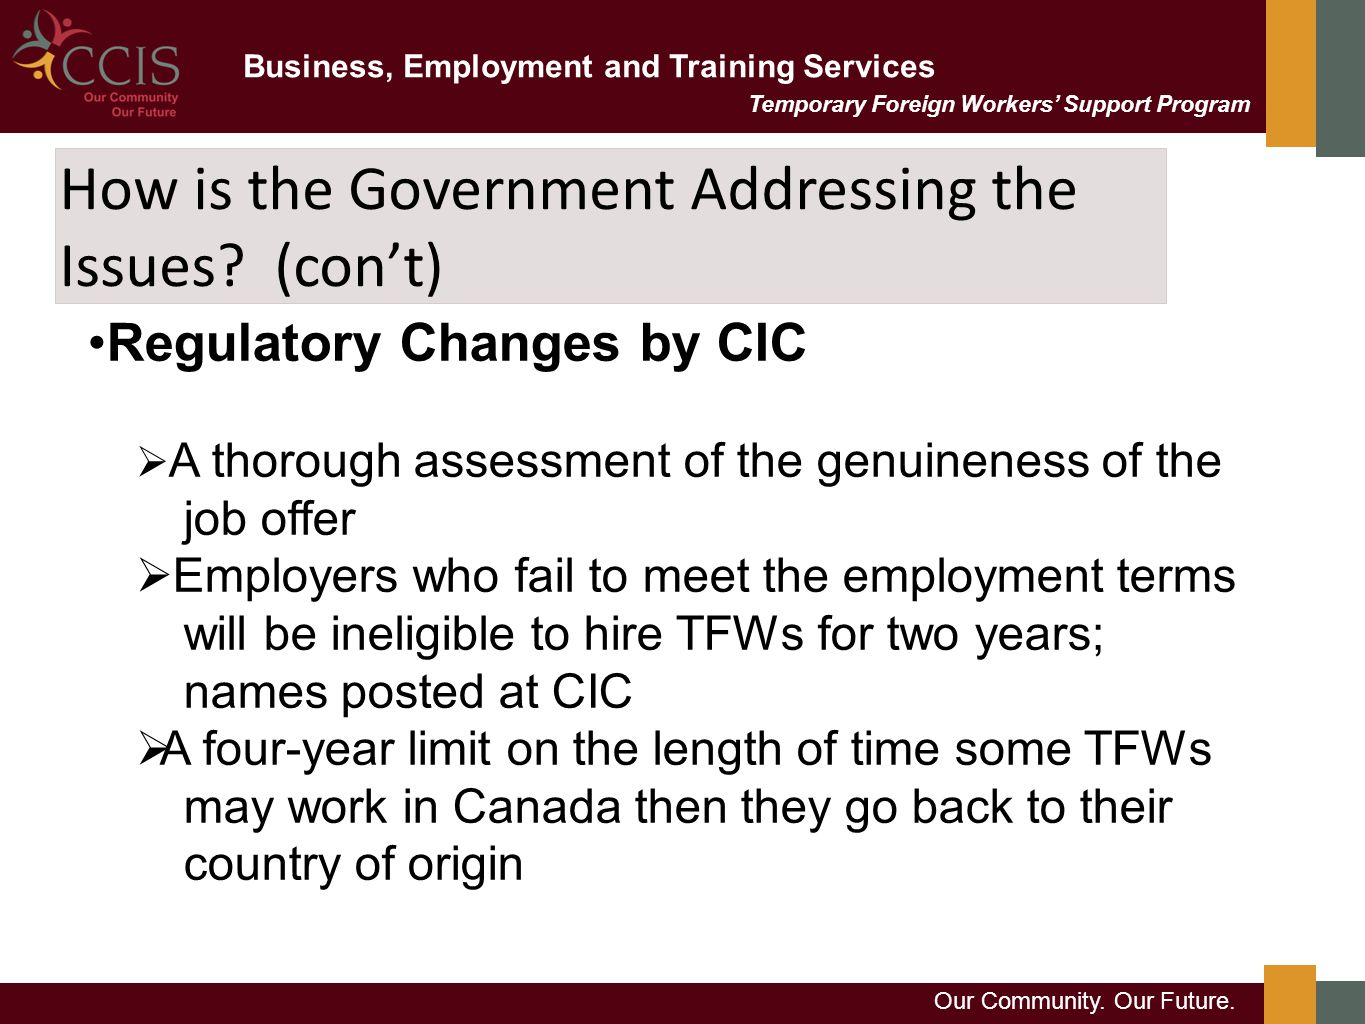 Business, Employment and Training Services Our Community. Our Future. Temporary Foreign Workers' Support Program How is the Government Addressing the